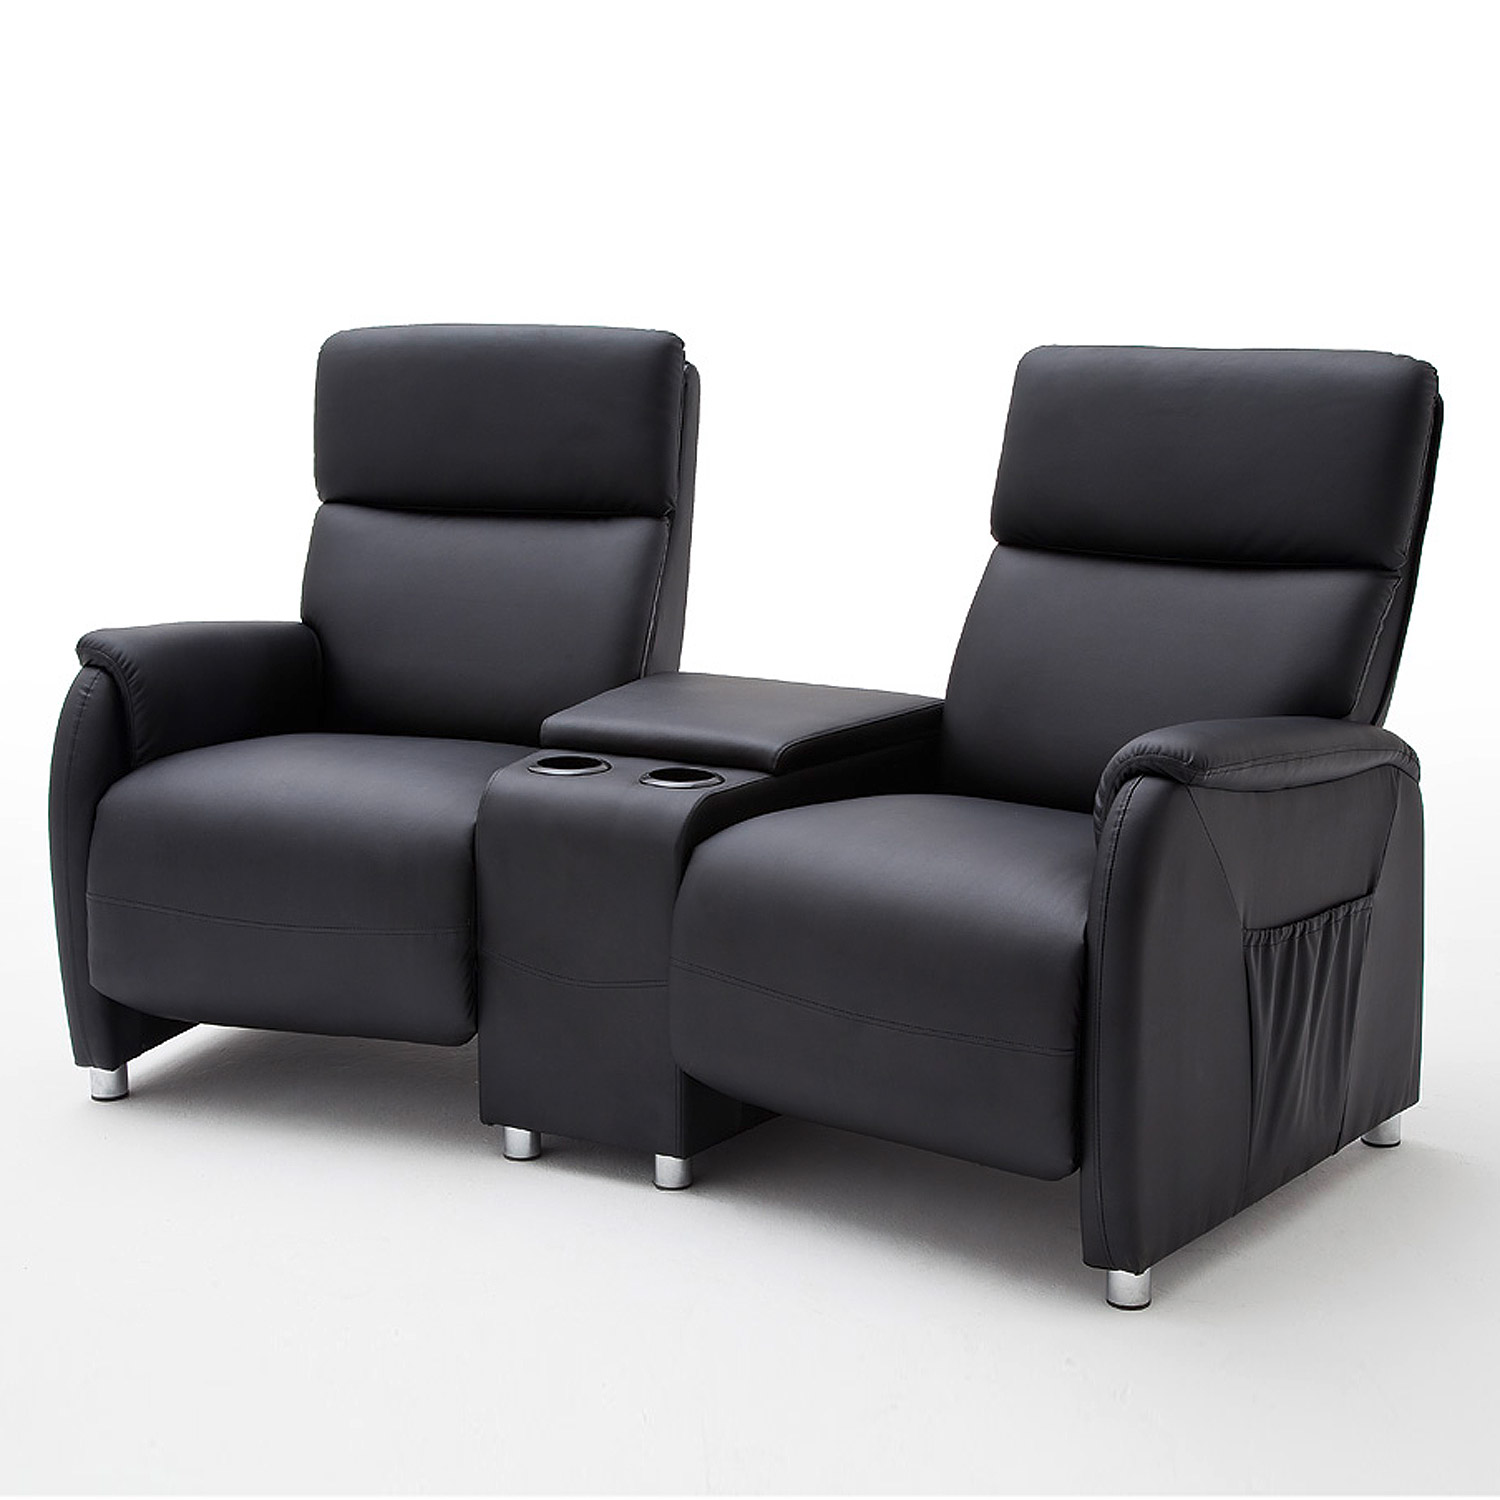 kino 2er sessel dani cinema sofa lederlook schwarz mit. Black Bedroom Furniture Sets. Home Design Ideas